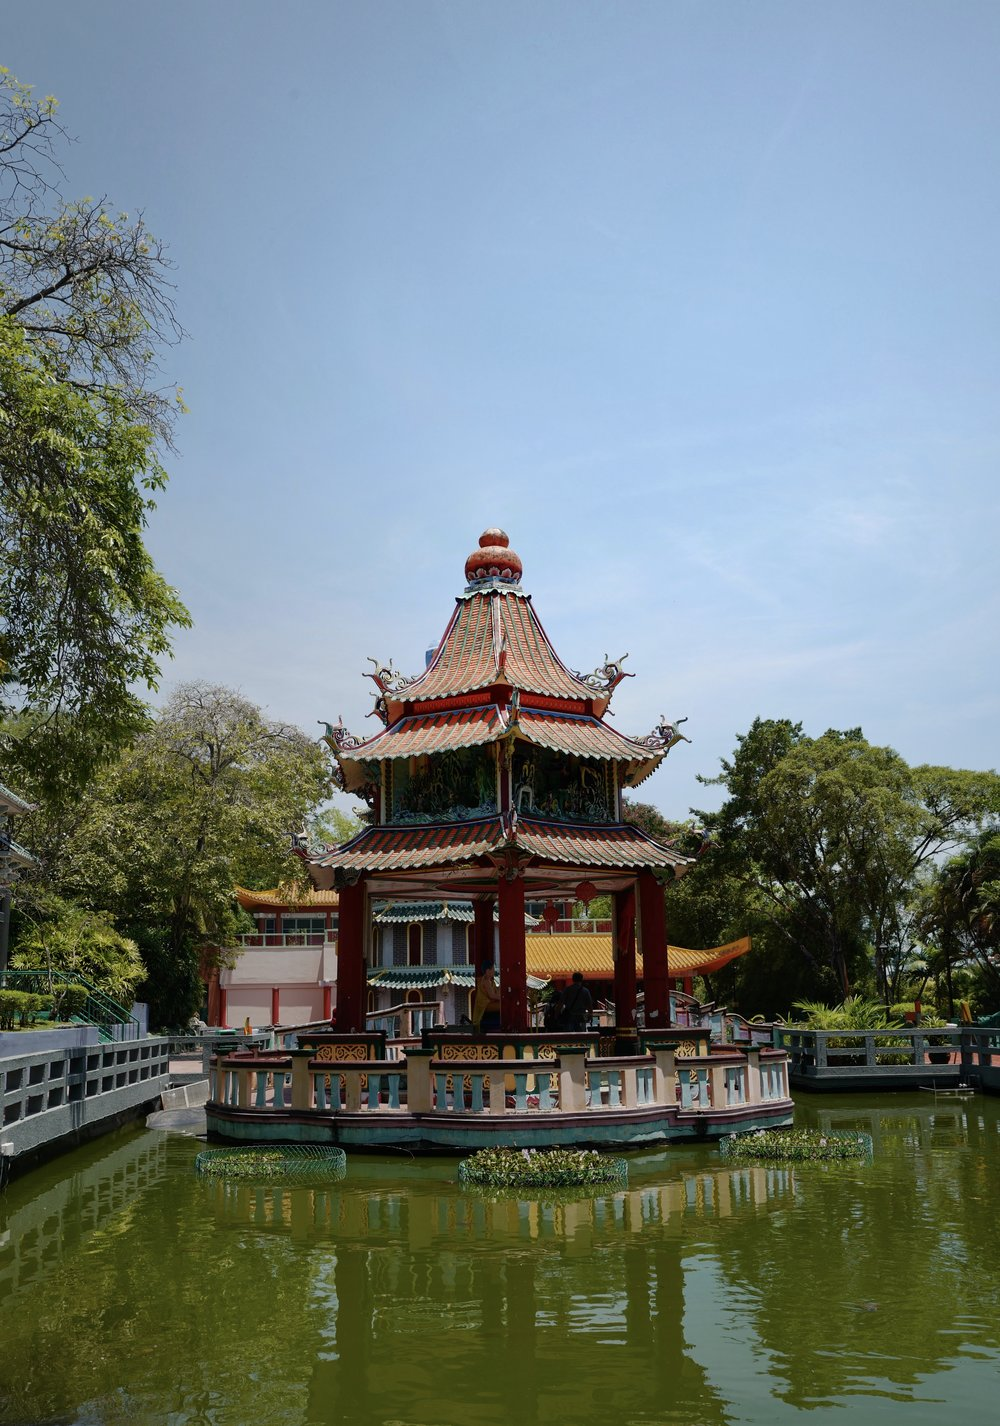 The pagoda at    Haw Par Villa